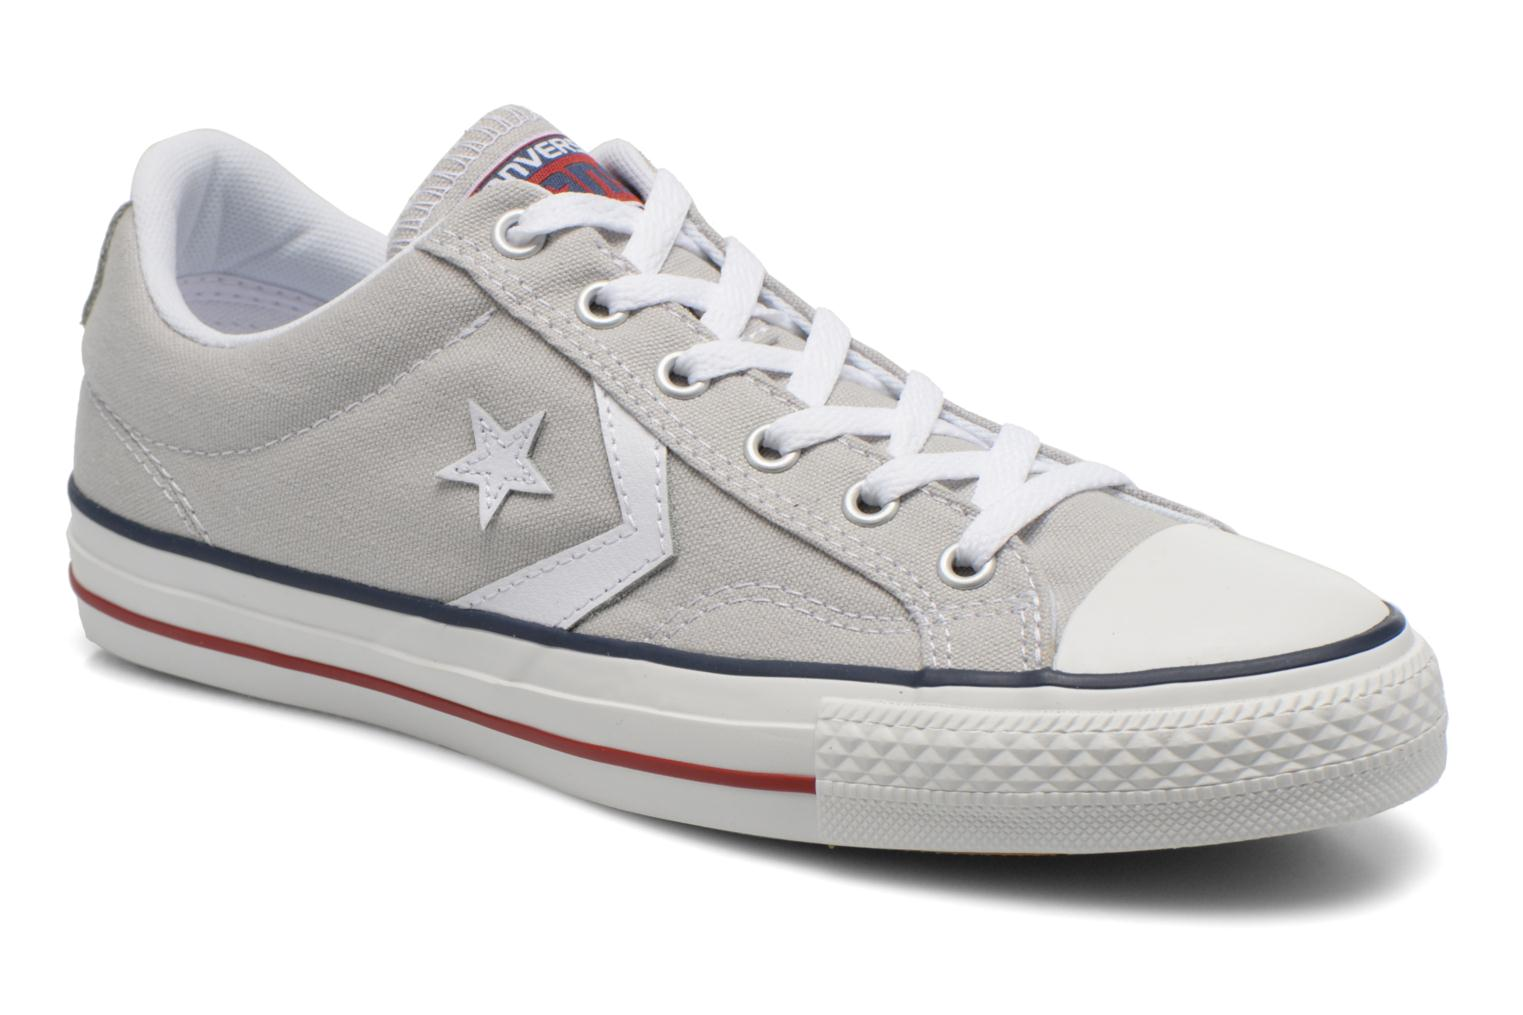 Sneakers Star Player Ev Canvas Ox M by ConverseConverseGrijsPaar schoenen - Sneakers88695494599042 1/2Textiel